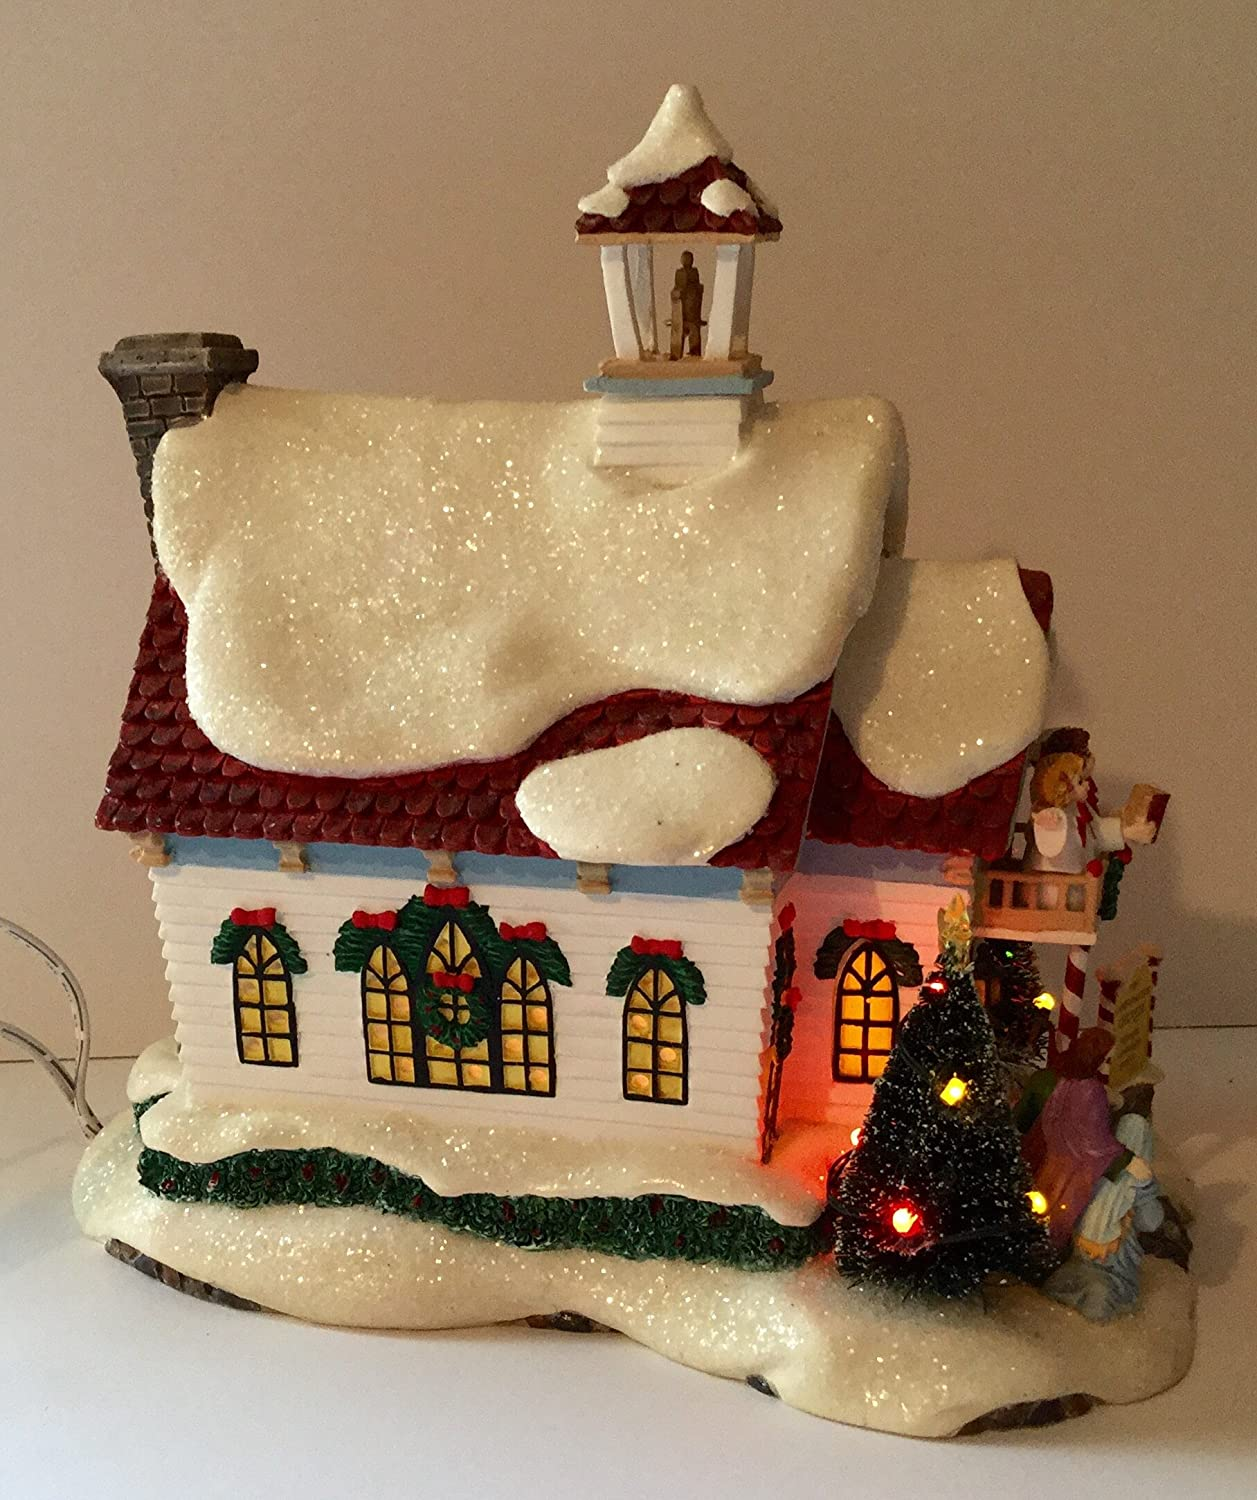 Twas The Night Before Christmas To Christmas Service We Go Dept 56 No 78106 Department 56 56.78106